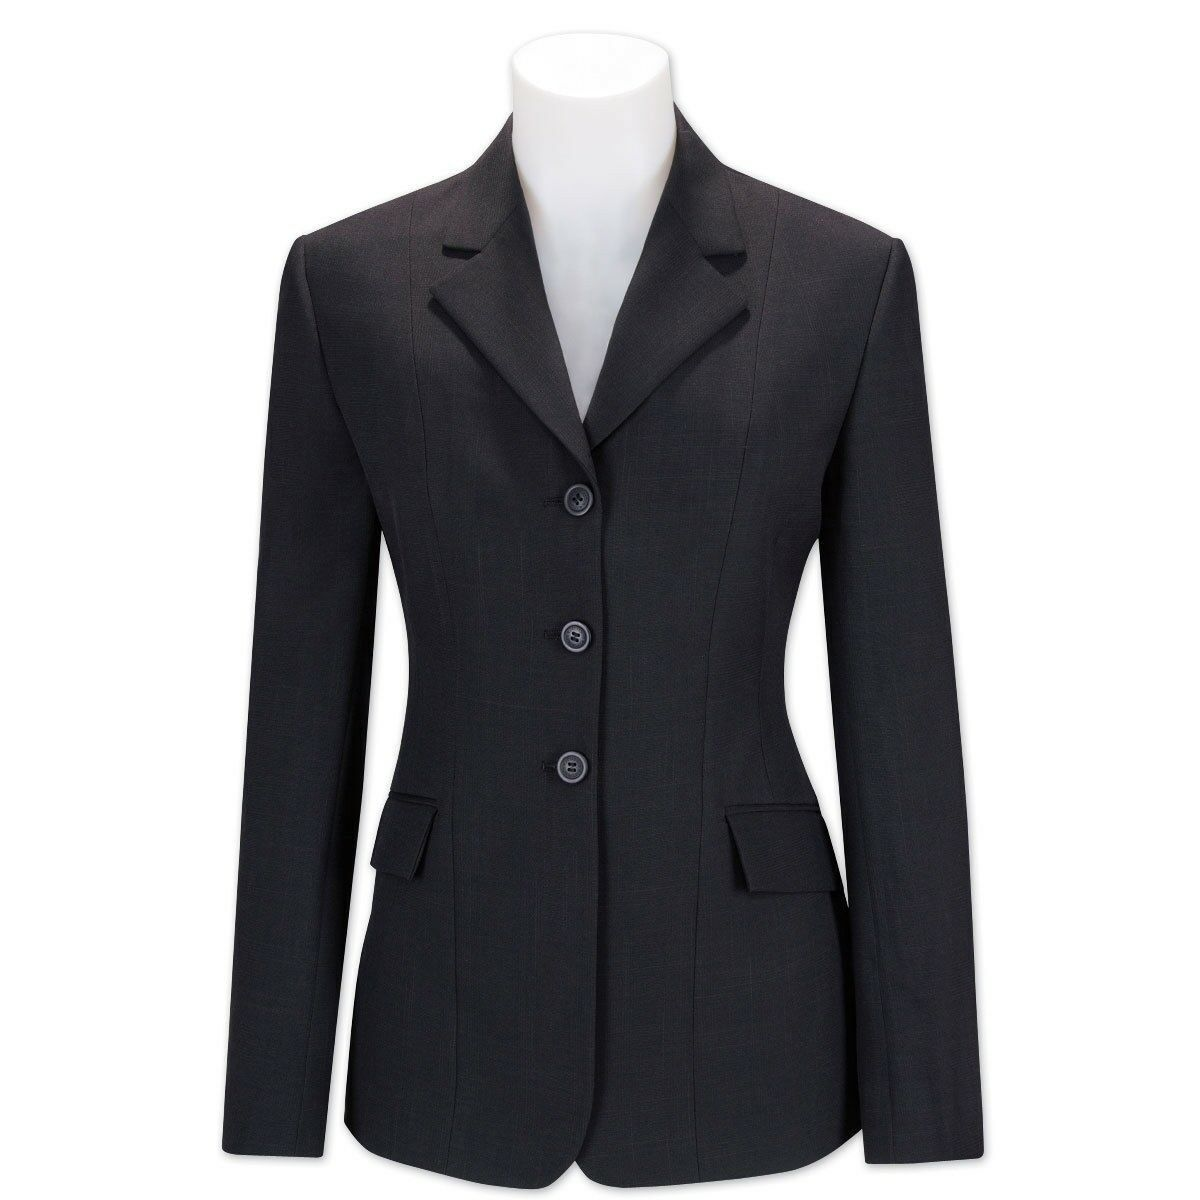 R.J. Classics  Ladies Essential Collection Show Coat - Navy Plaid (2Re)  customers first